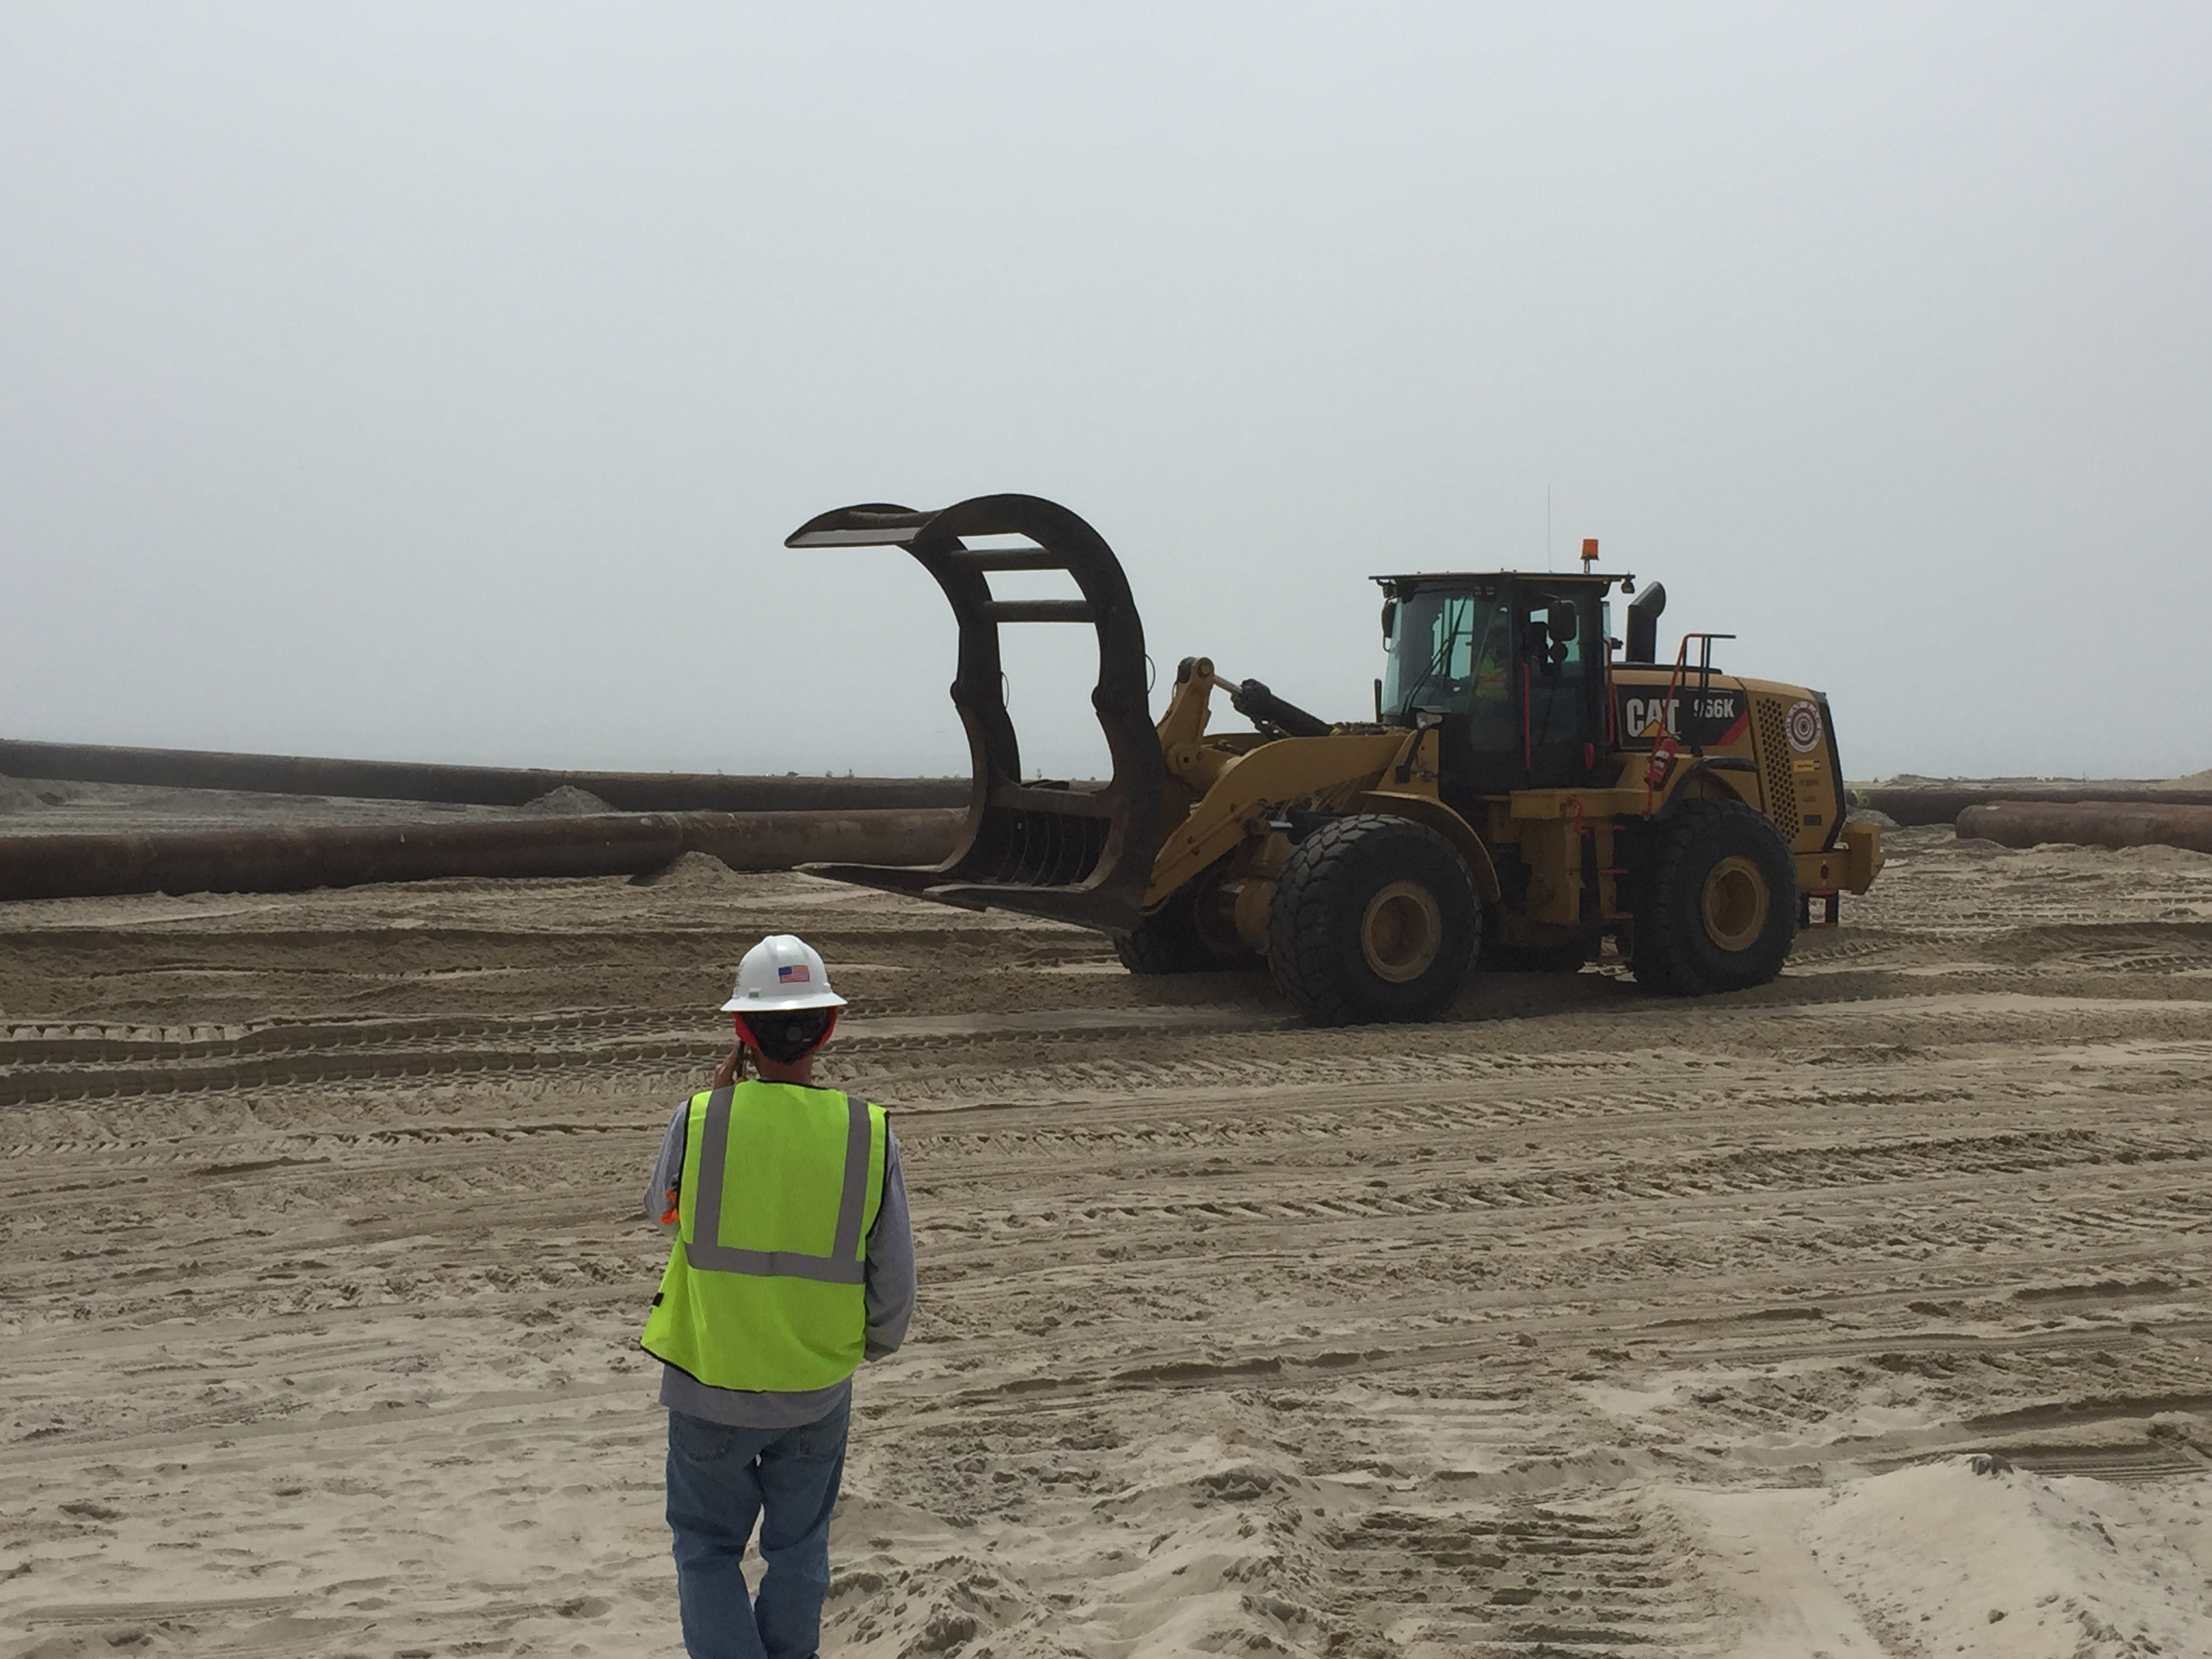 Beach replenishment commences in Ship Bottom, N.J., May 7, 2015. (Photo: Daniel Nee)